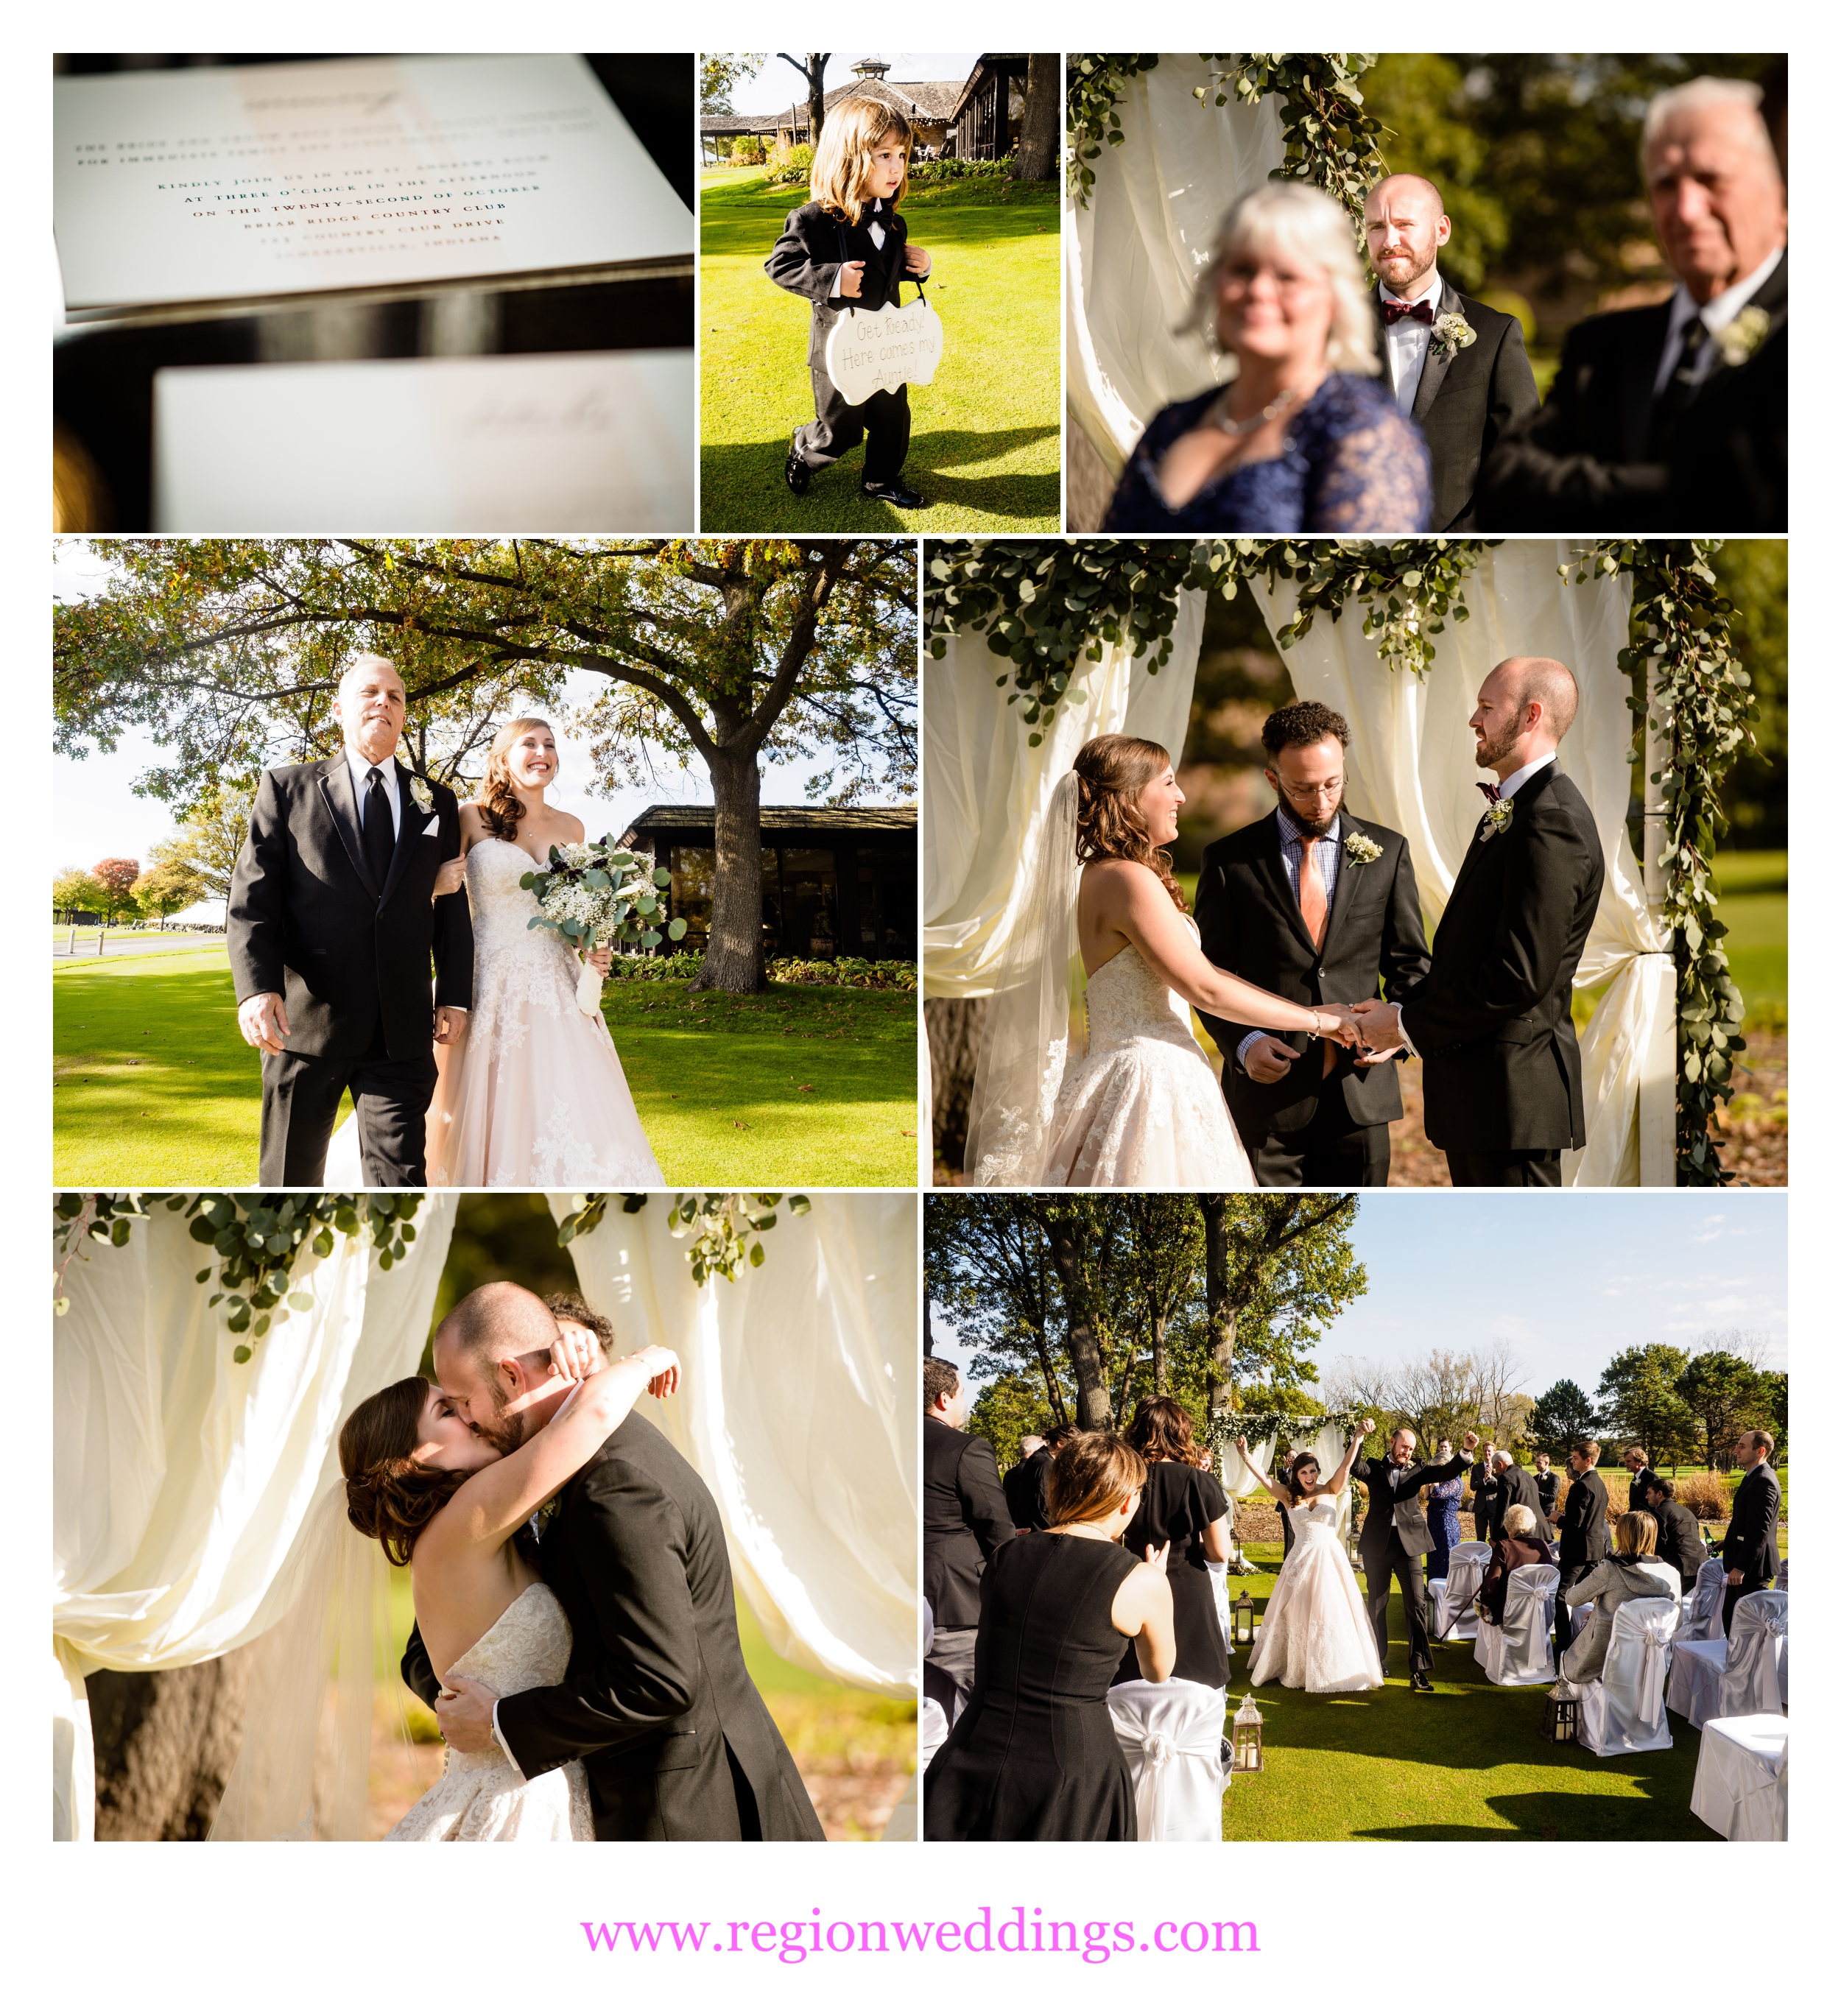 Outdoor wedding ceremony at Briar Ridge Country Club.